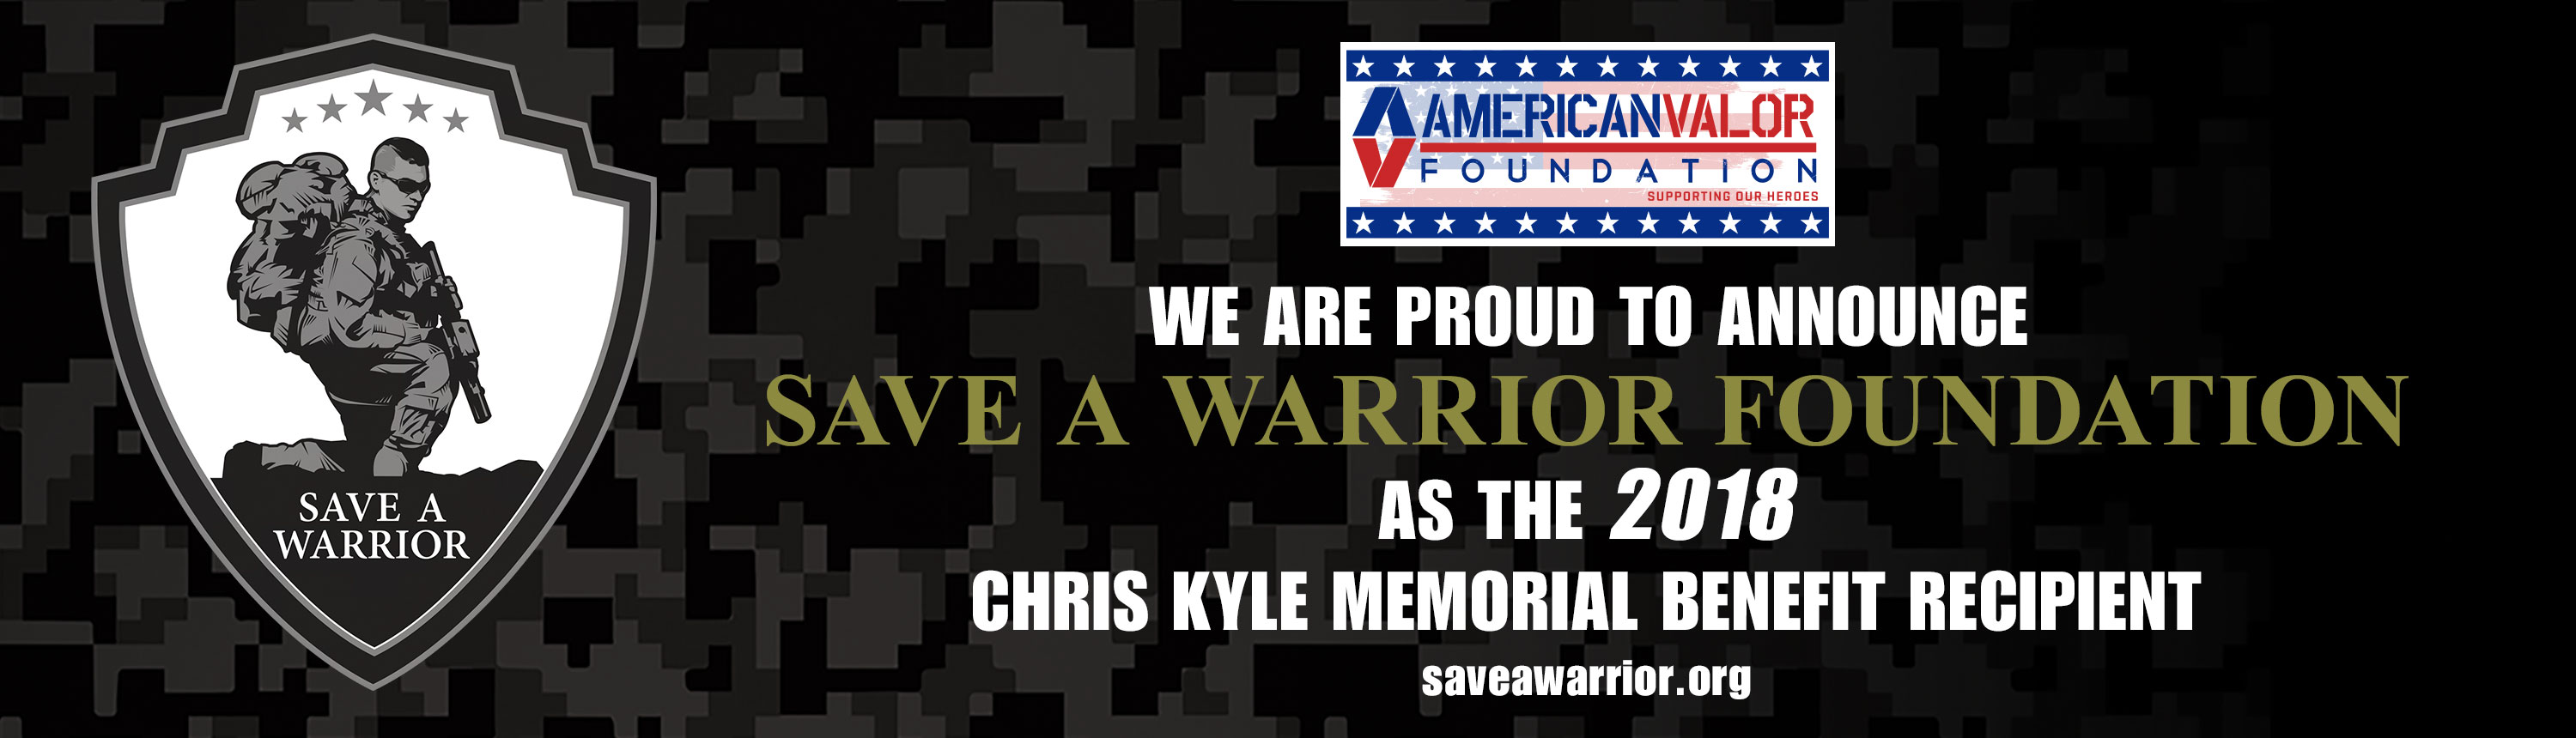 Chris Kyle Memorial Benefit It S Our Duty To Serve Those